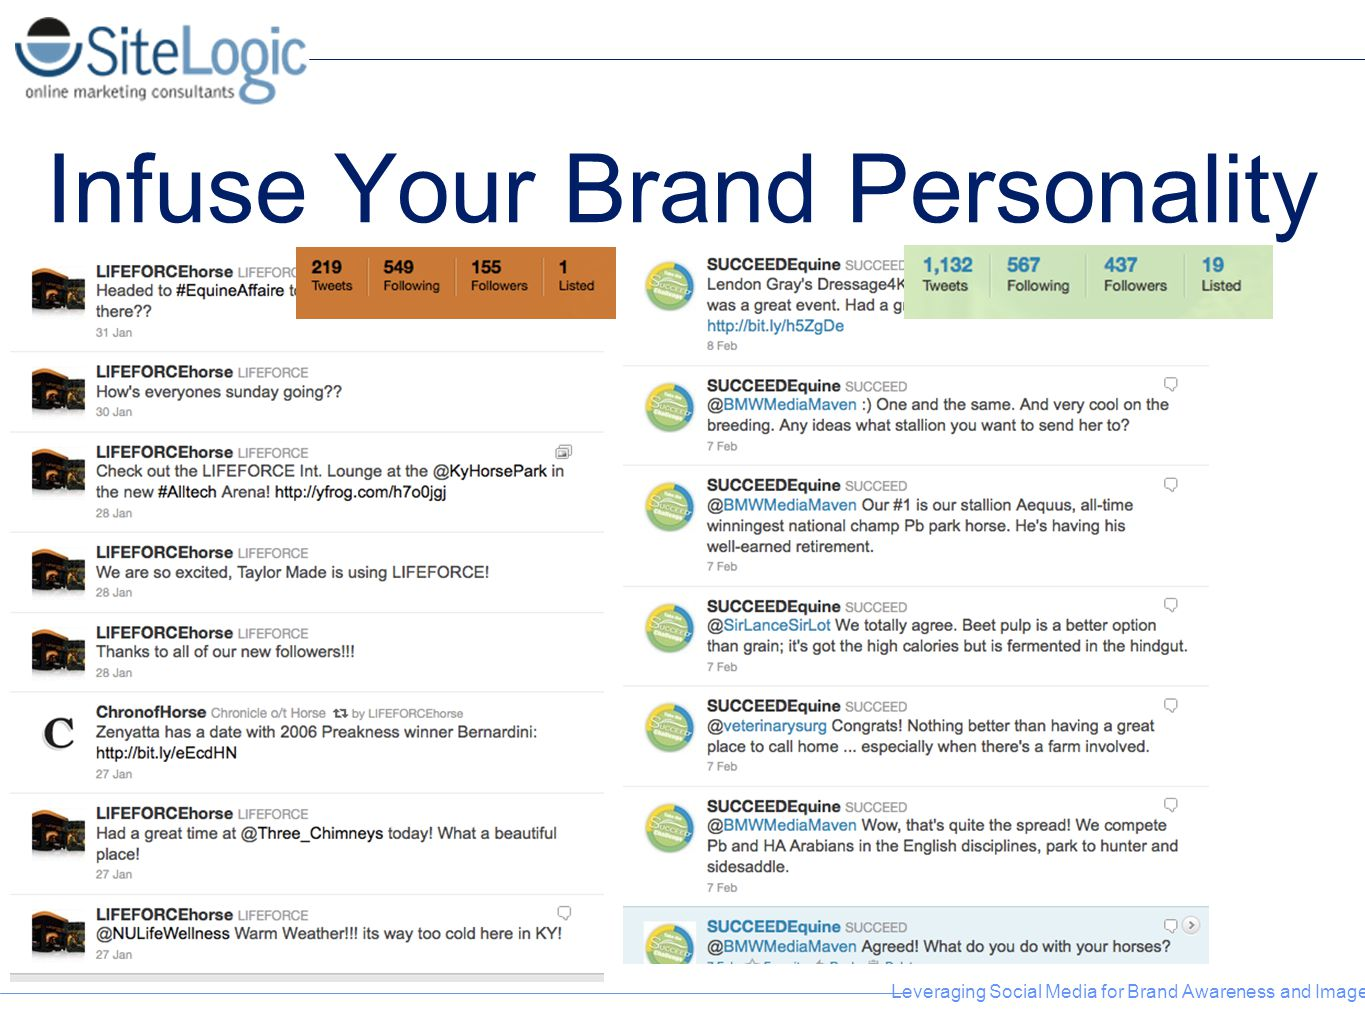 Infuse Your Brand Personality